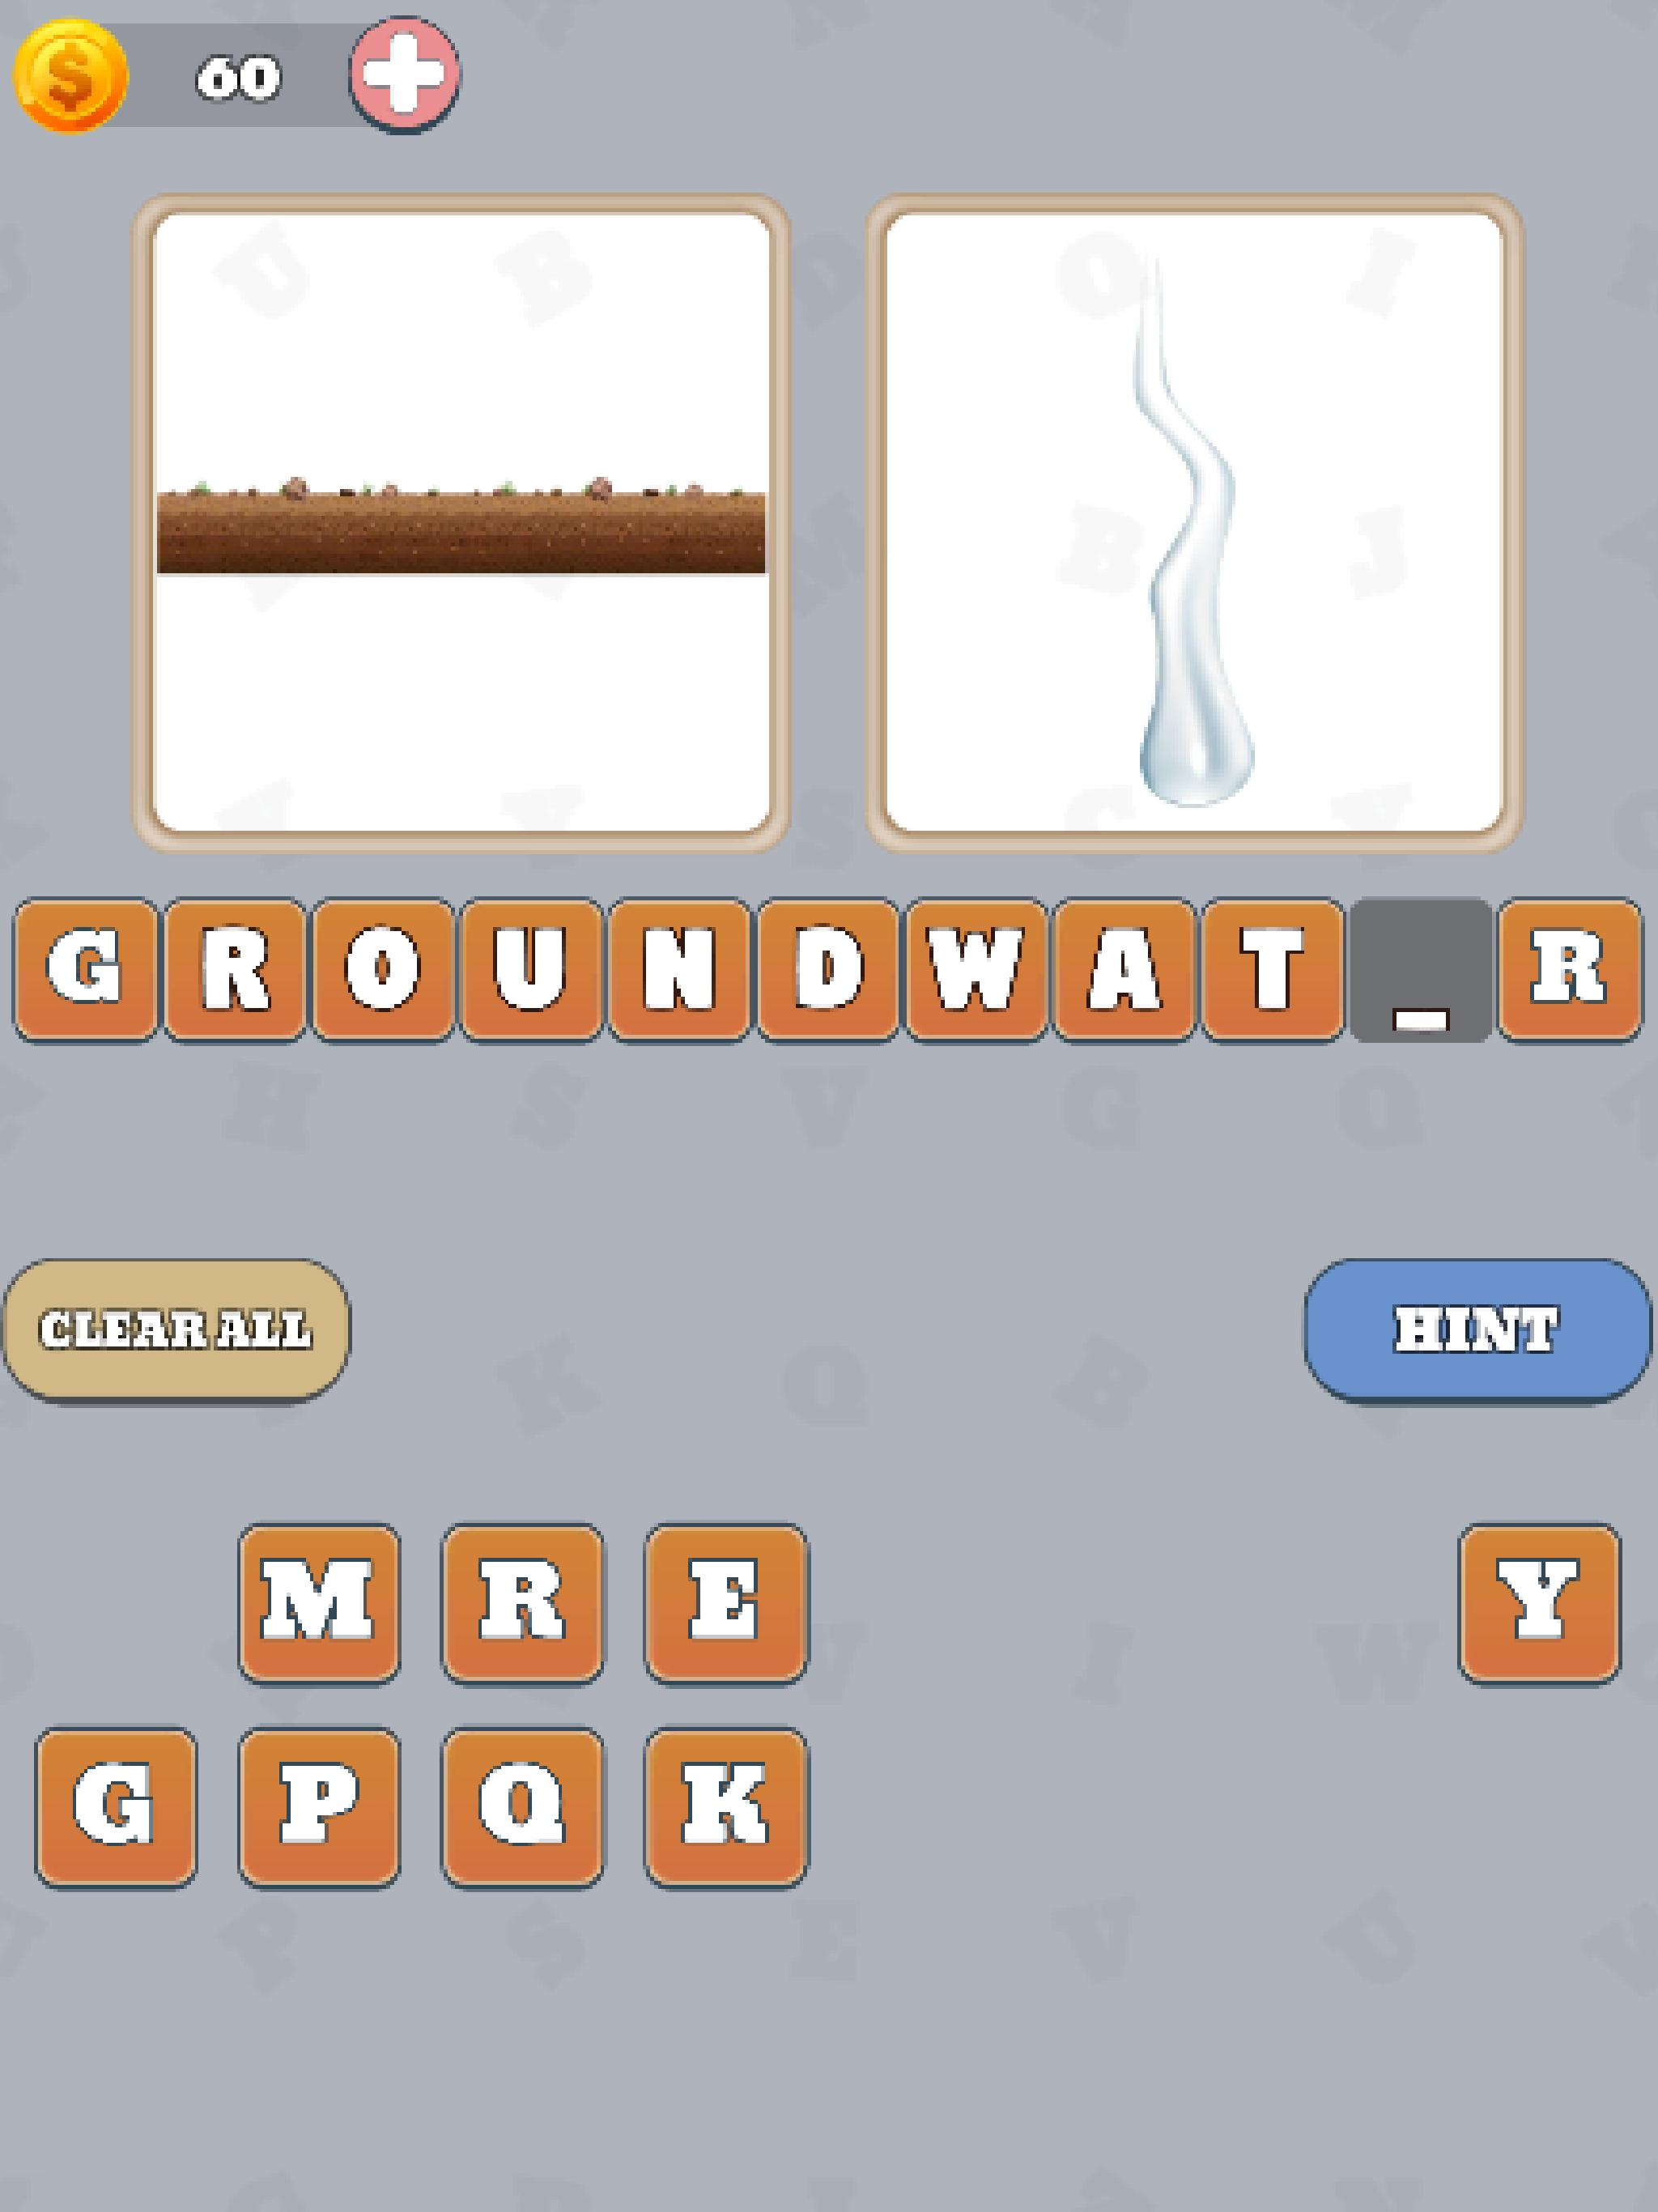 Pictures to word - picture quiz screenshot 7